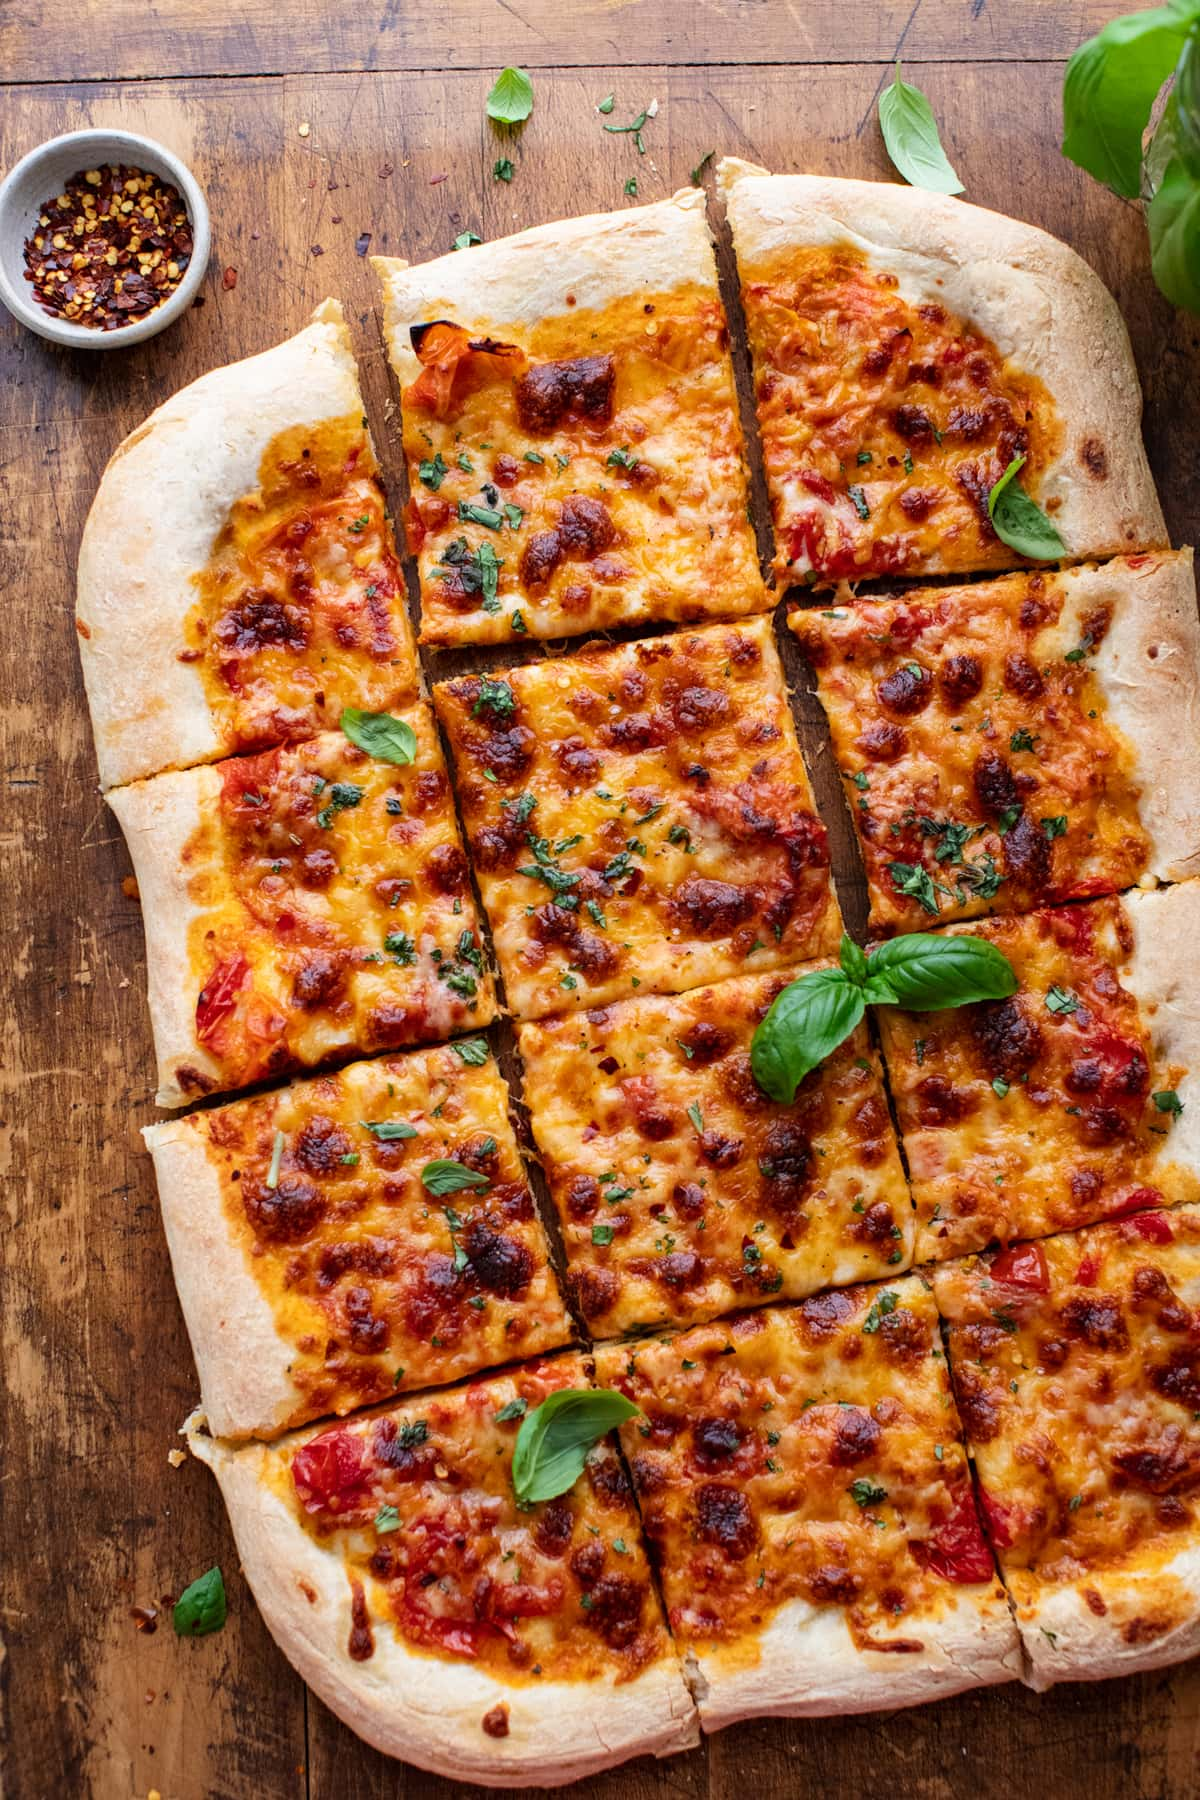 rectangle-shaped sheet pan pizza sliced into pieces on a wooden cutting board with herbs arranged around it.